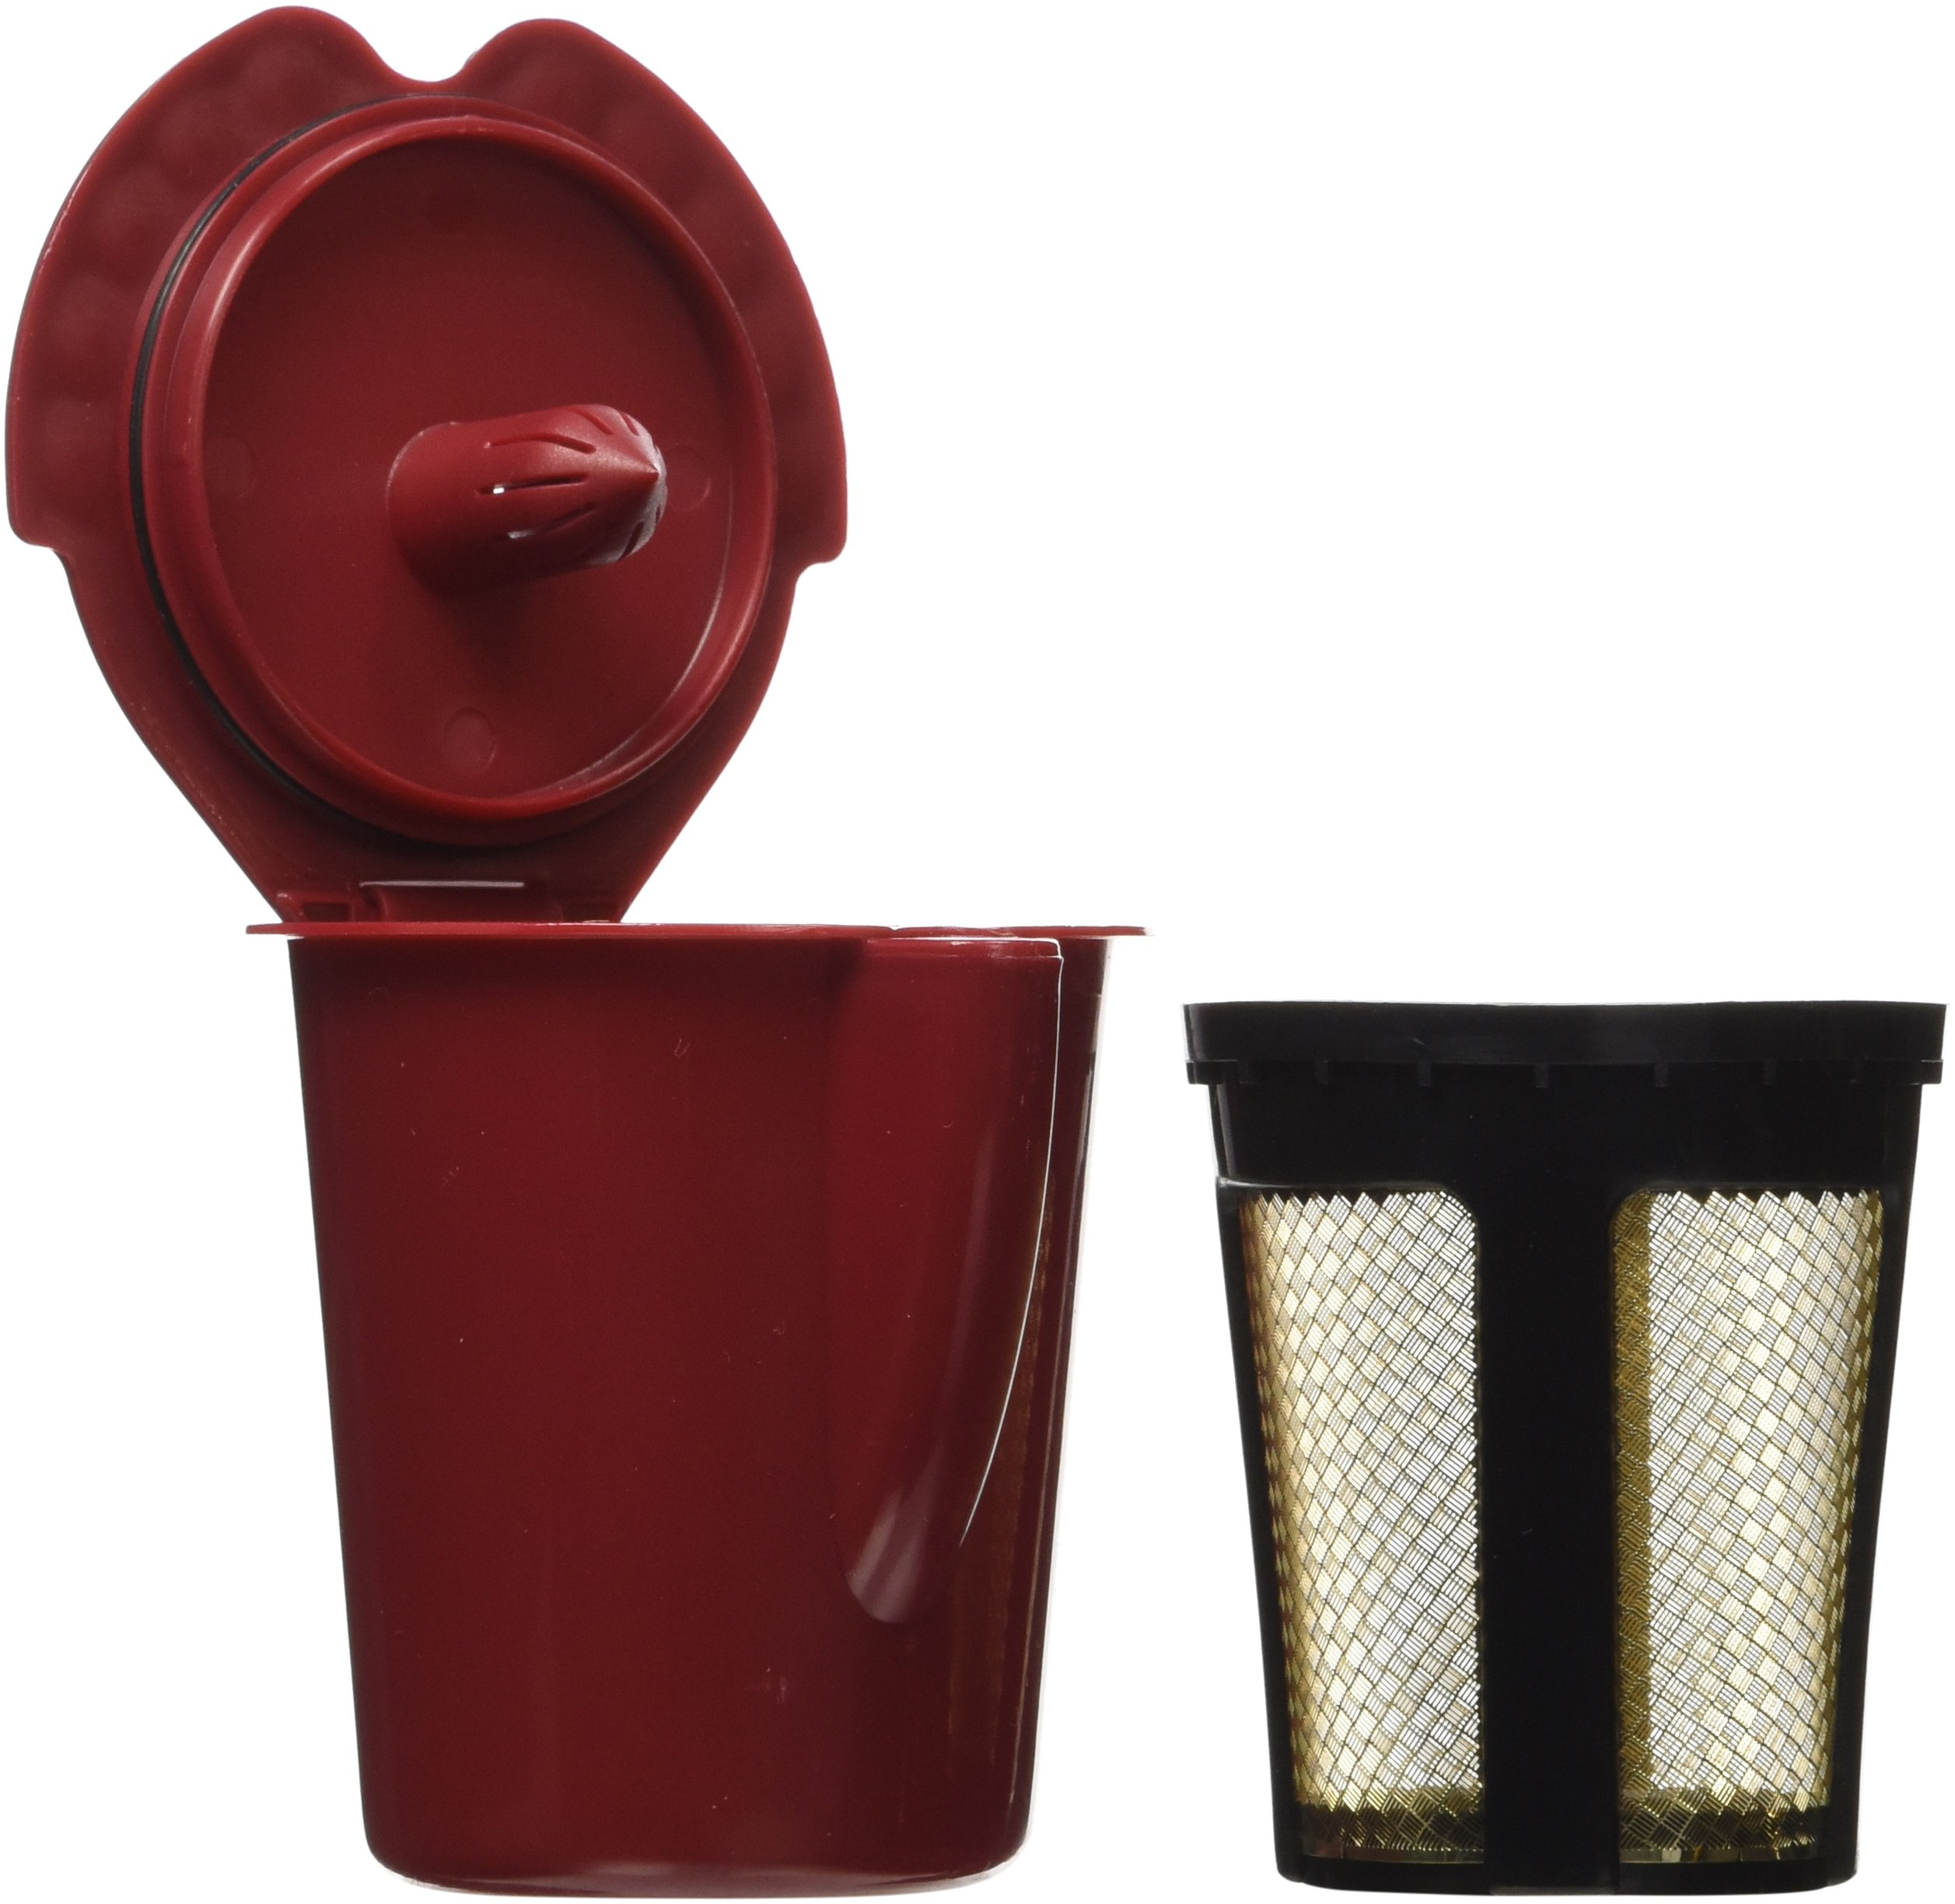 Solofill V1 GOLD CUP 24K Plated Refillable Filter Cup for Coffee Pod